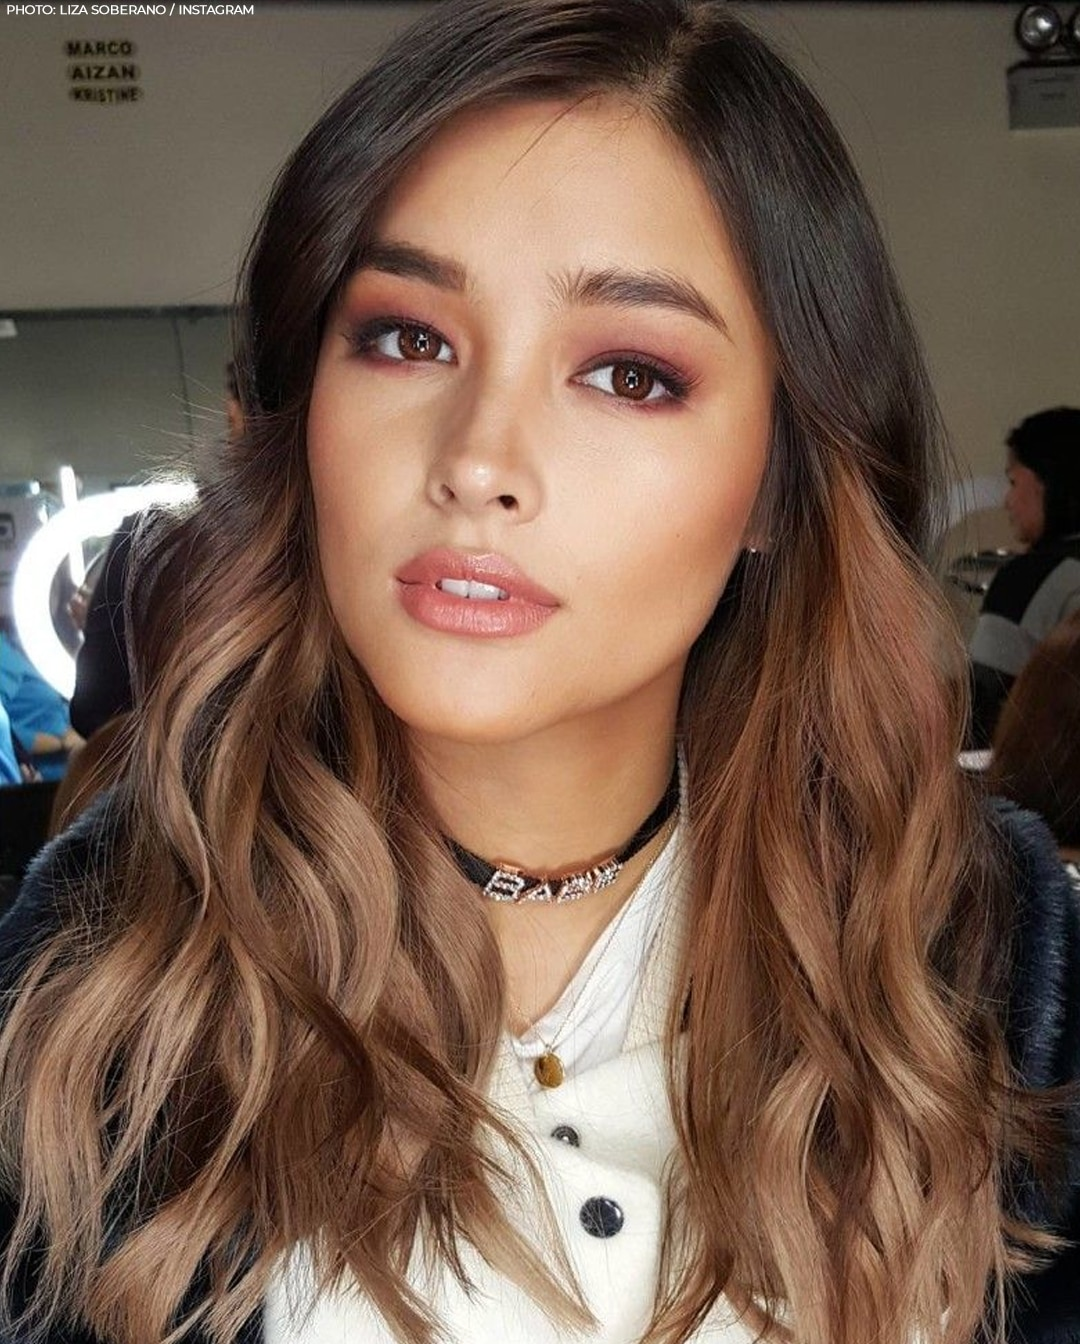 The best of all of Liza Soberano's makeovers